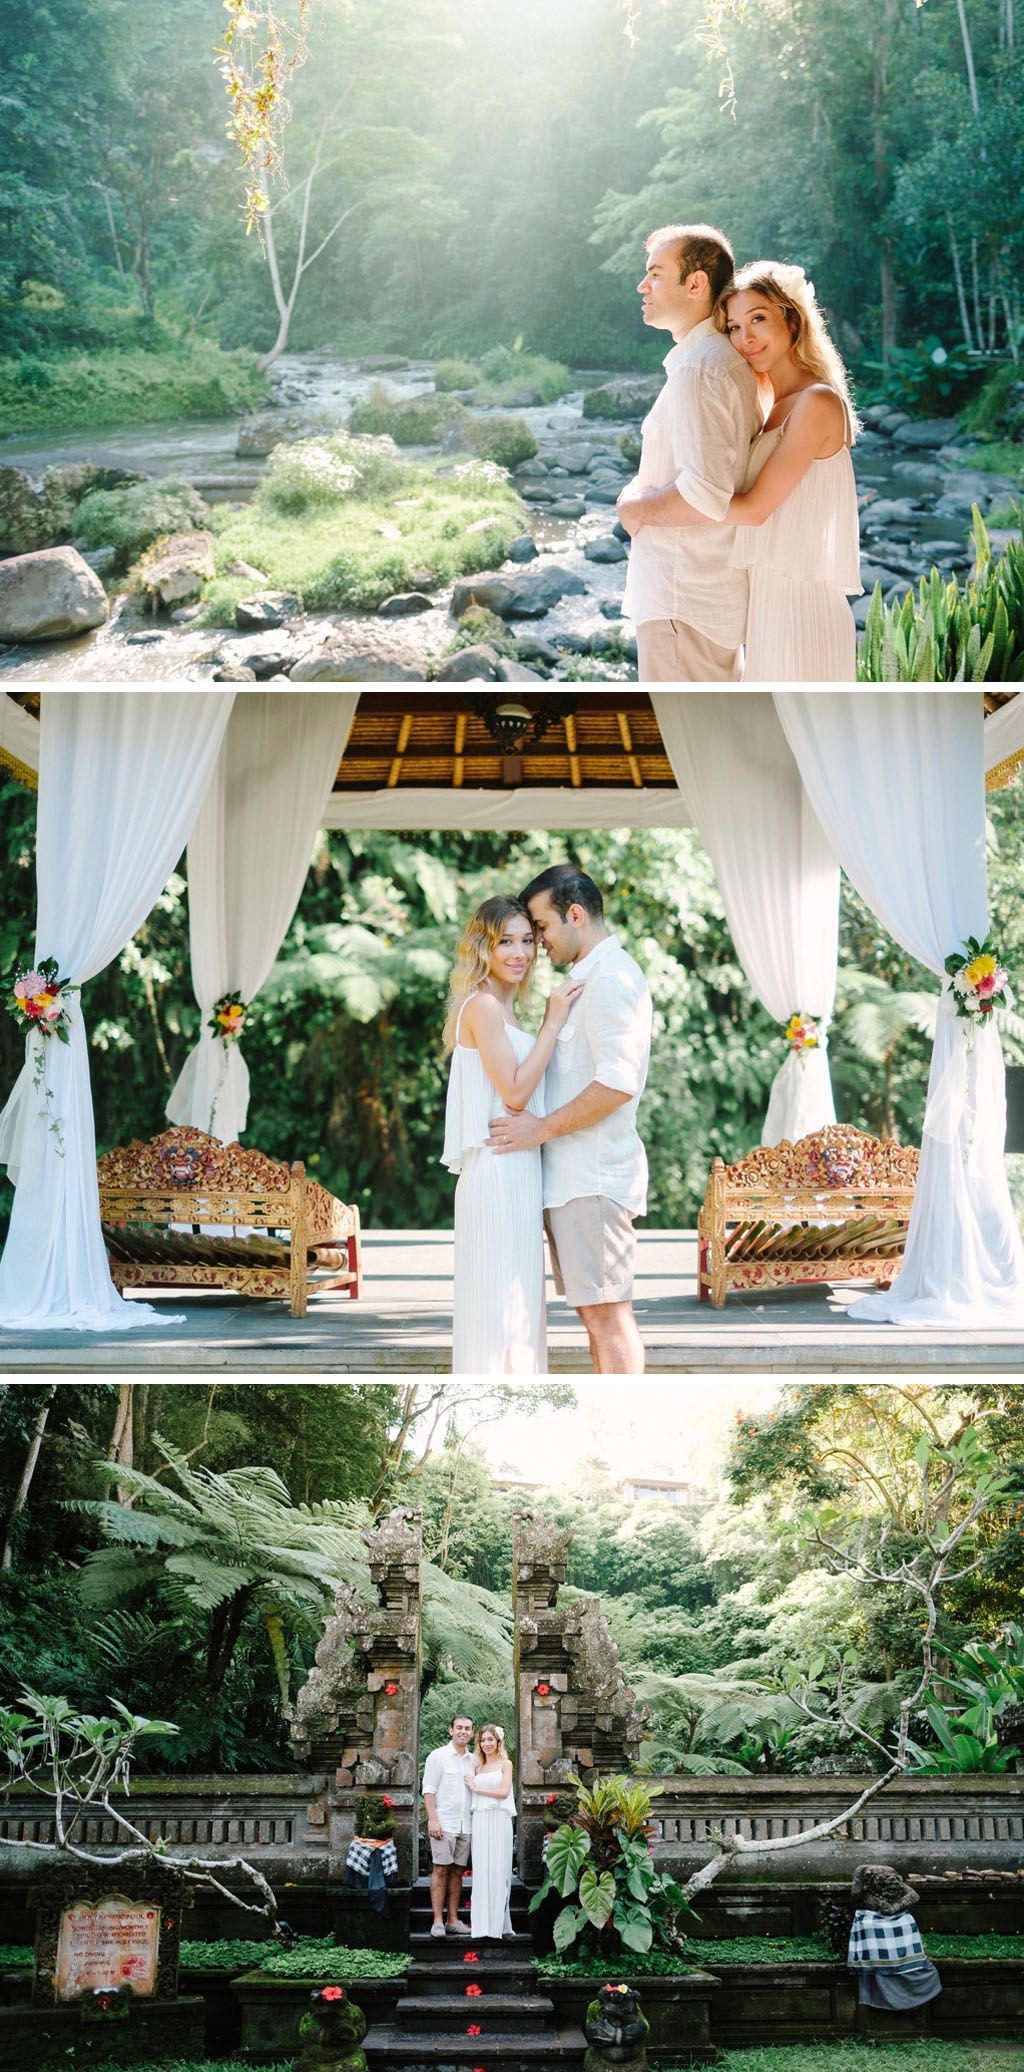 Bali wedding venues on the beach  Here are  Bali wedding venues in Ubud that are a woody heaven